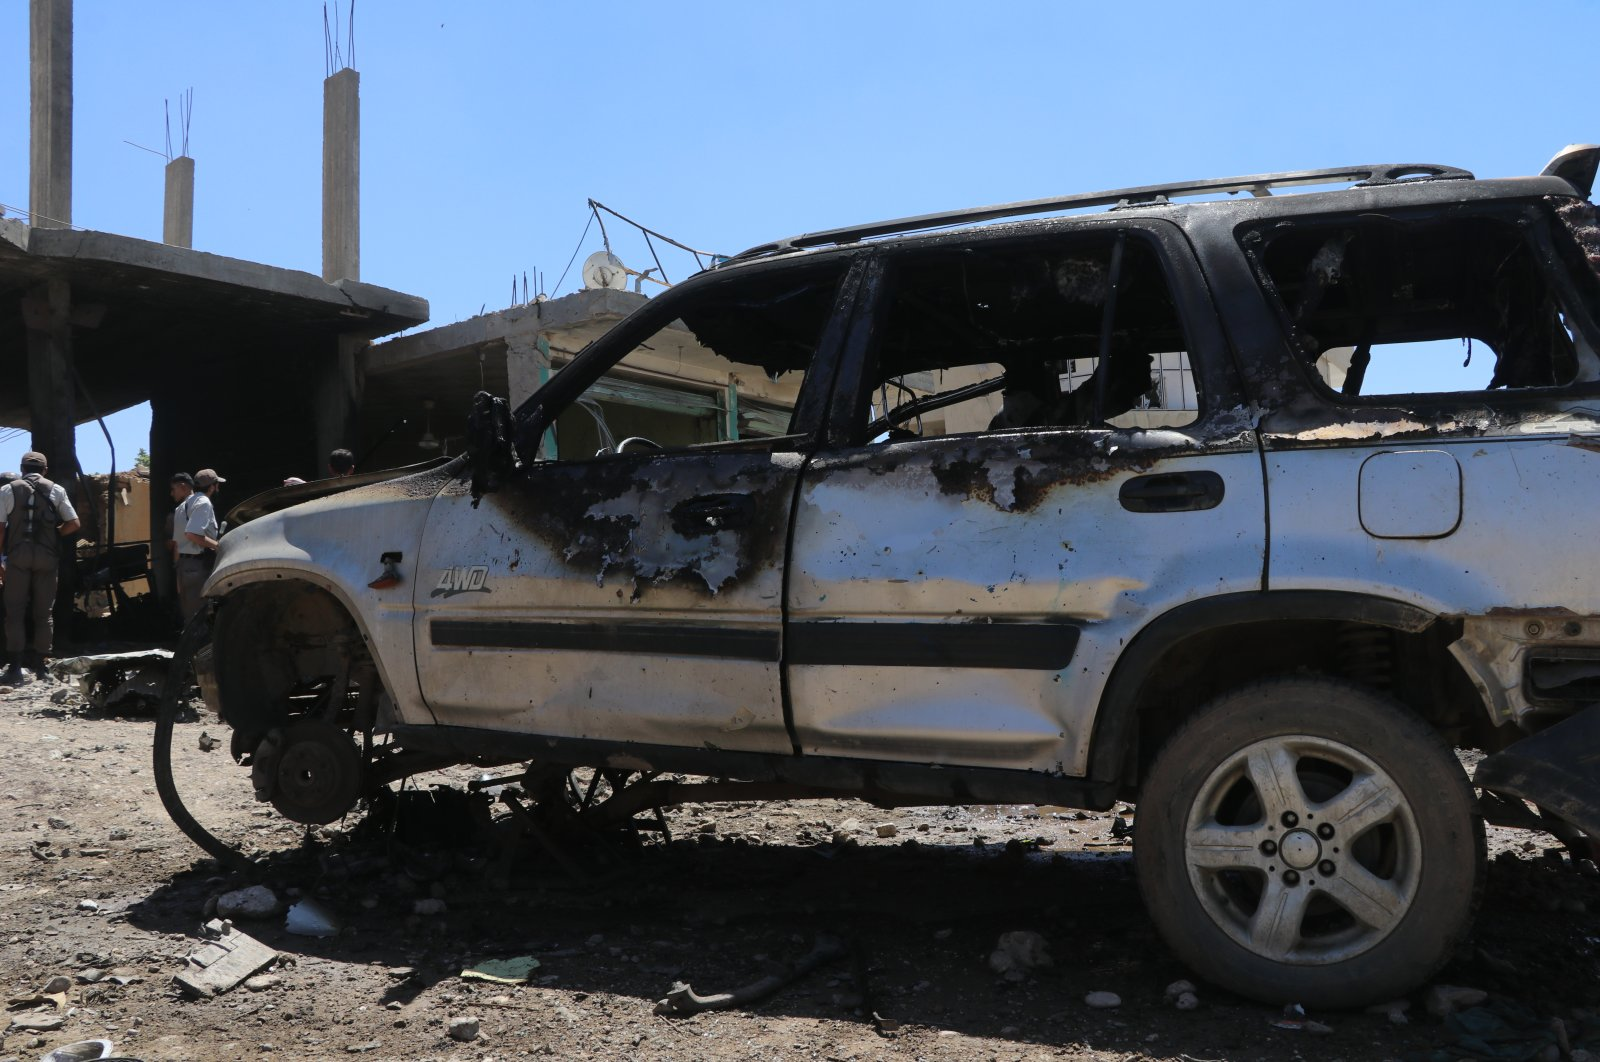 A car damaged by a YPG/PKK terrorist attack in Syria's Tal Hafar, June 23, 2020. (AA Photo)